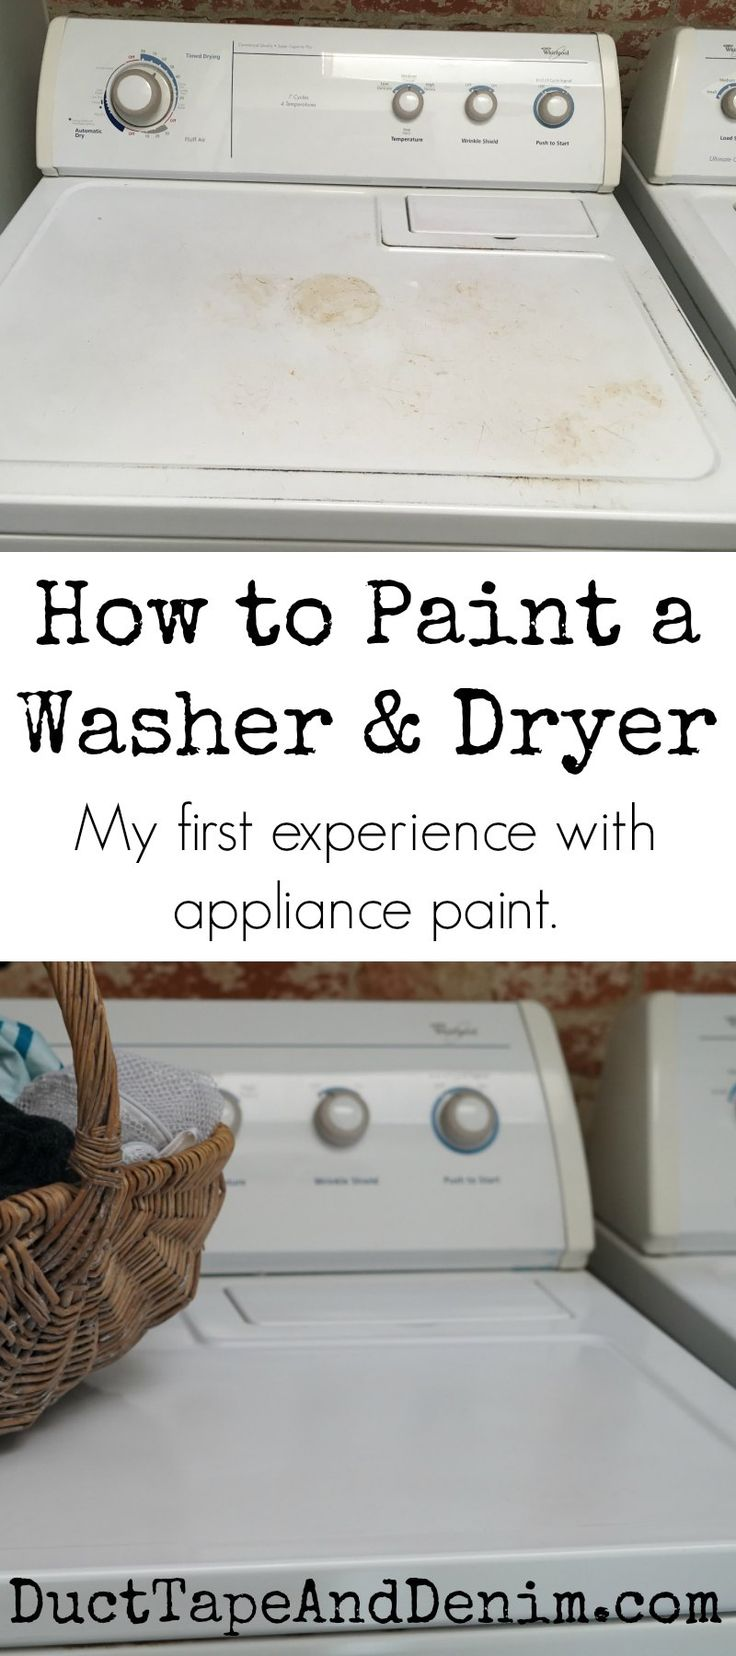 My washer and dryer both need repainted... Gotta love buying used! How to paint a washer and dryer. My first experience with appliance paint. Washing machine makeover!